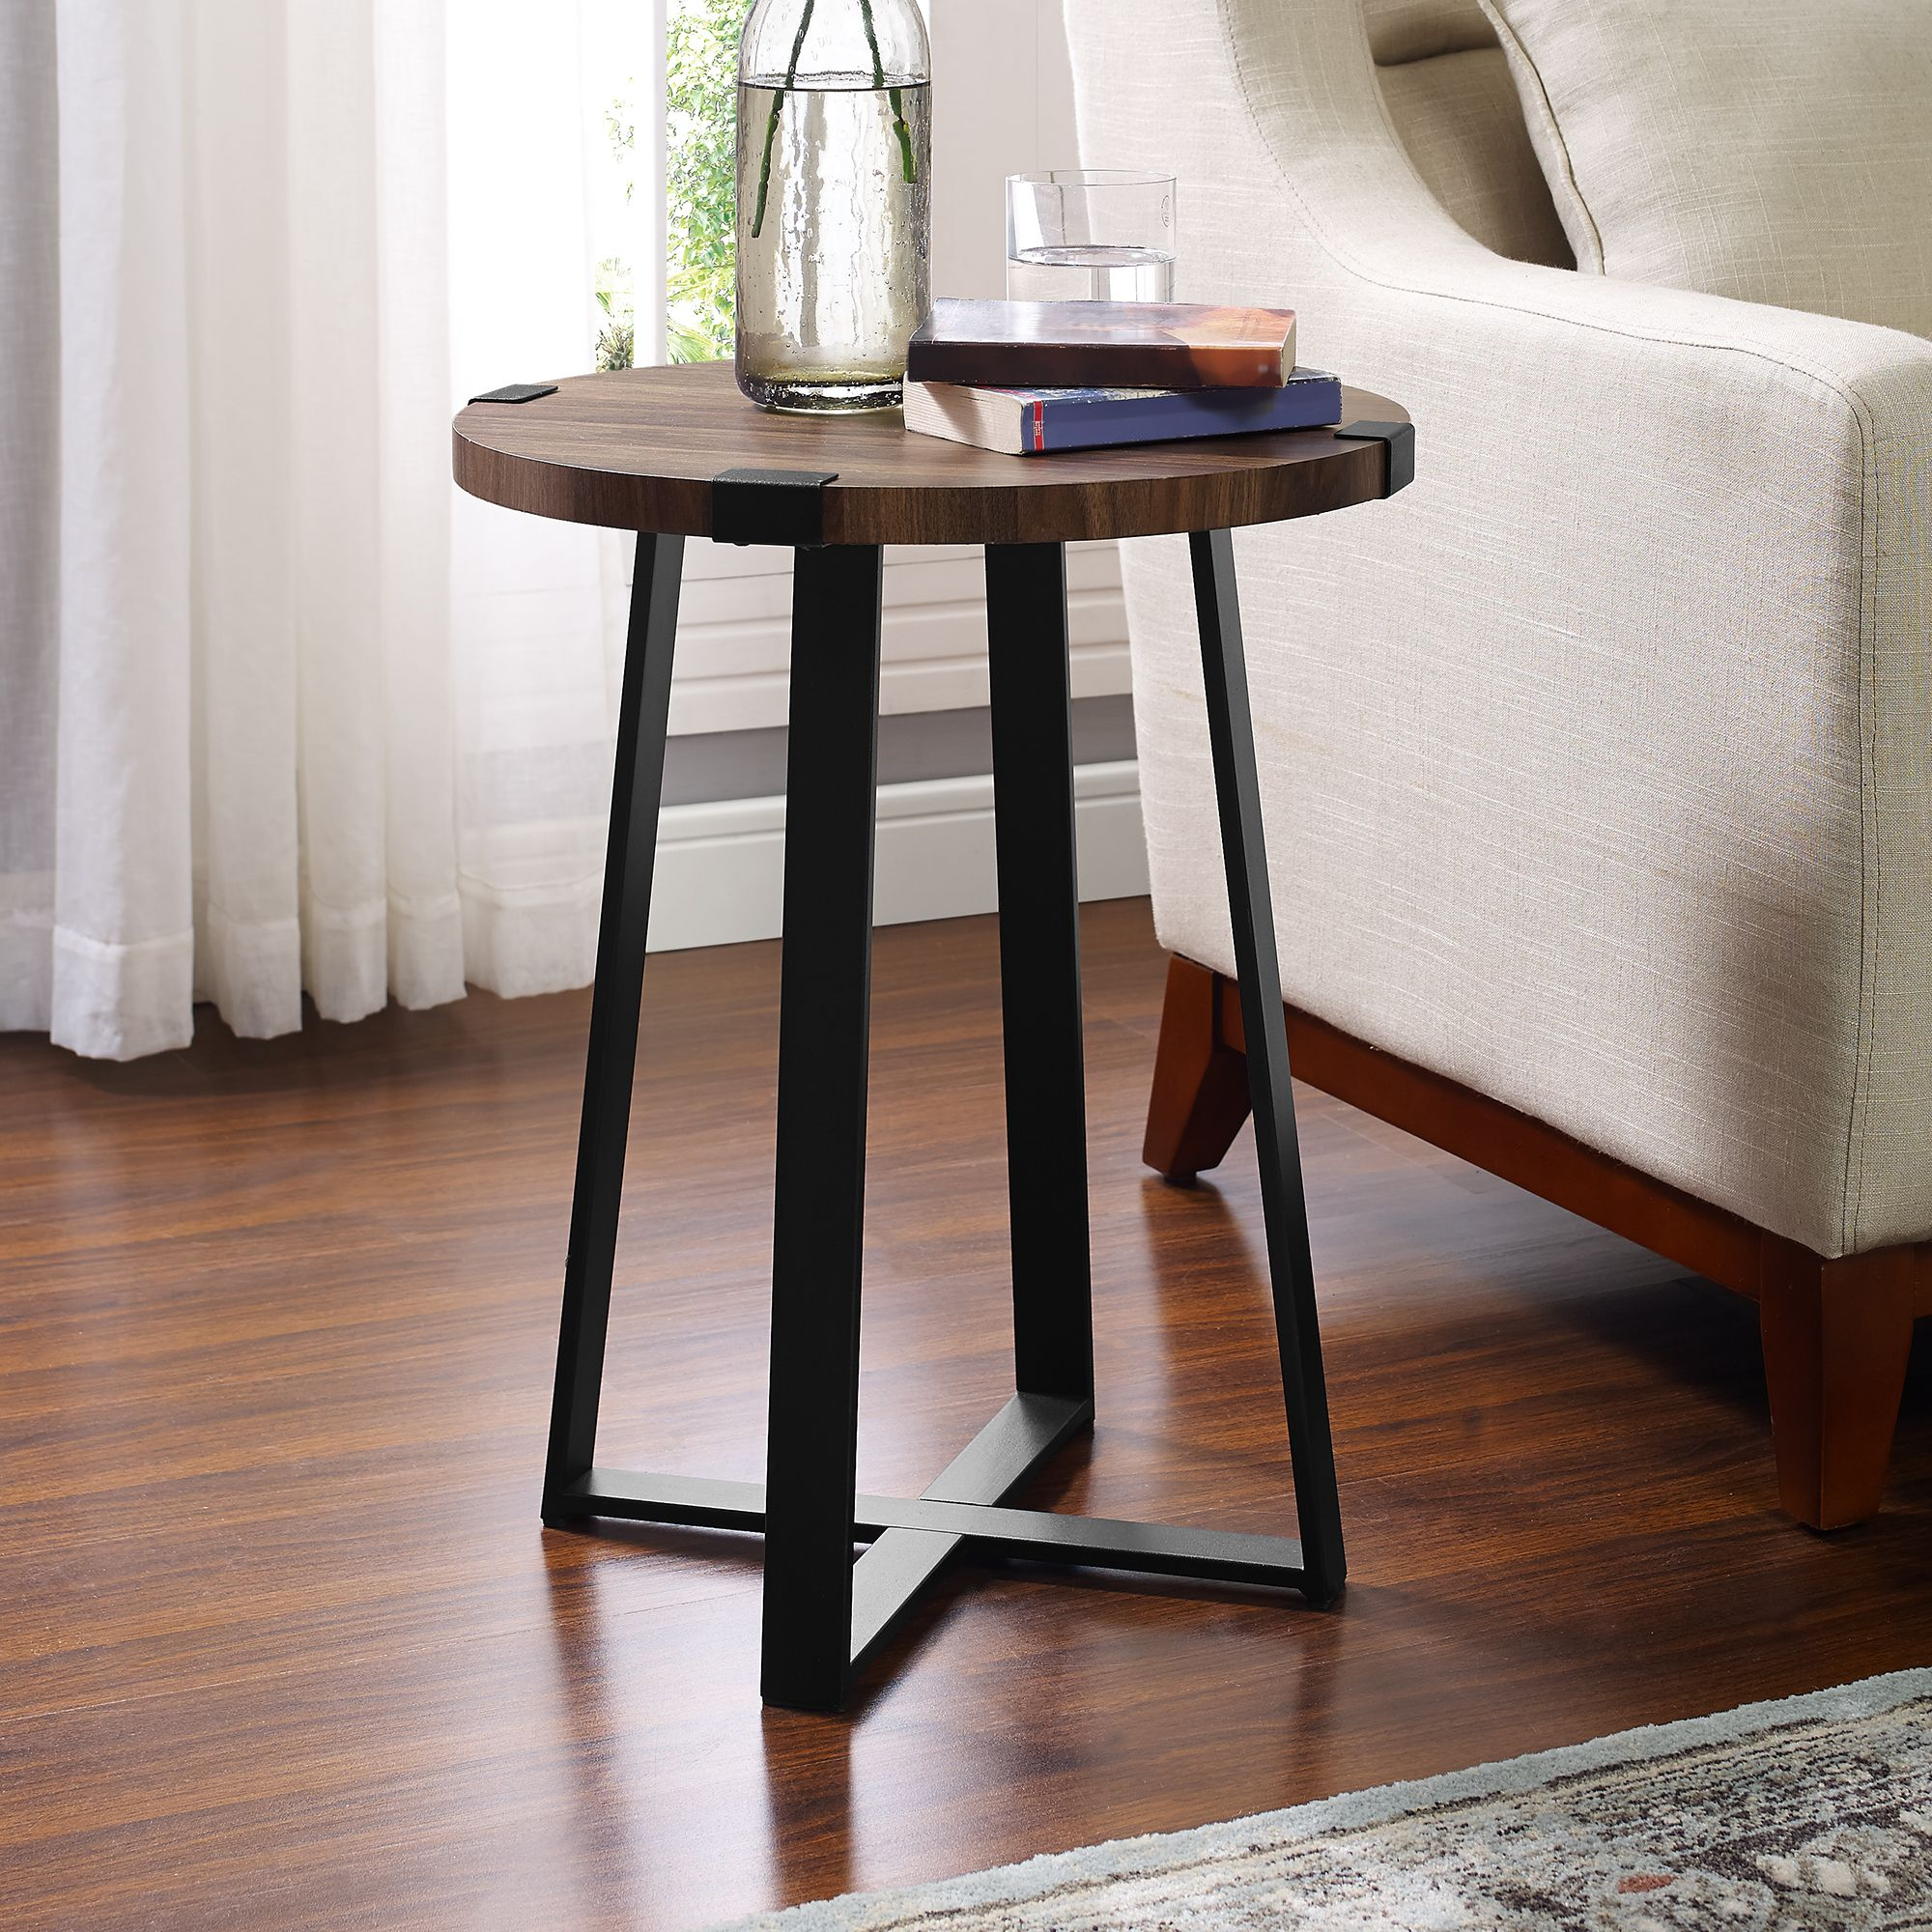 Home In 2020 End Tables Wood Metal Round Metal Side Table